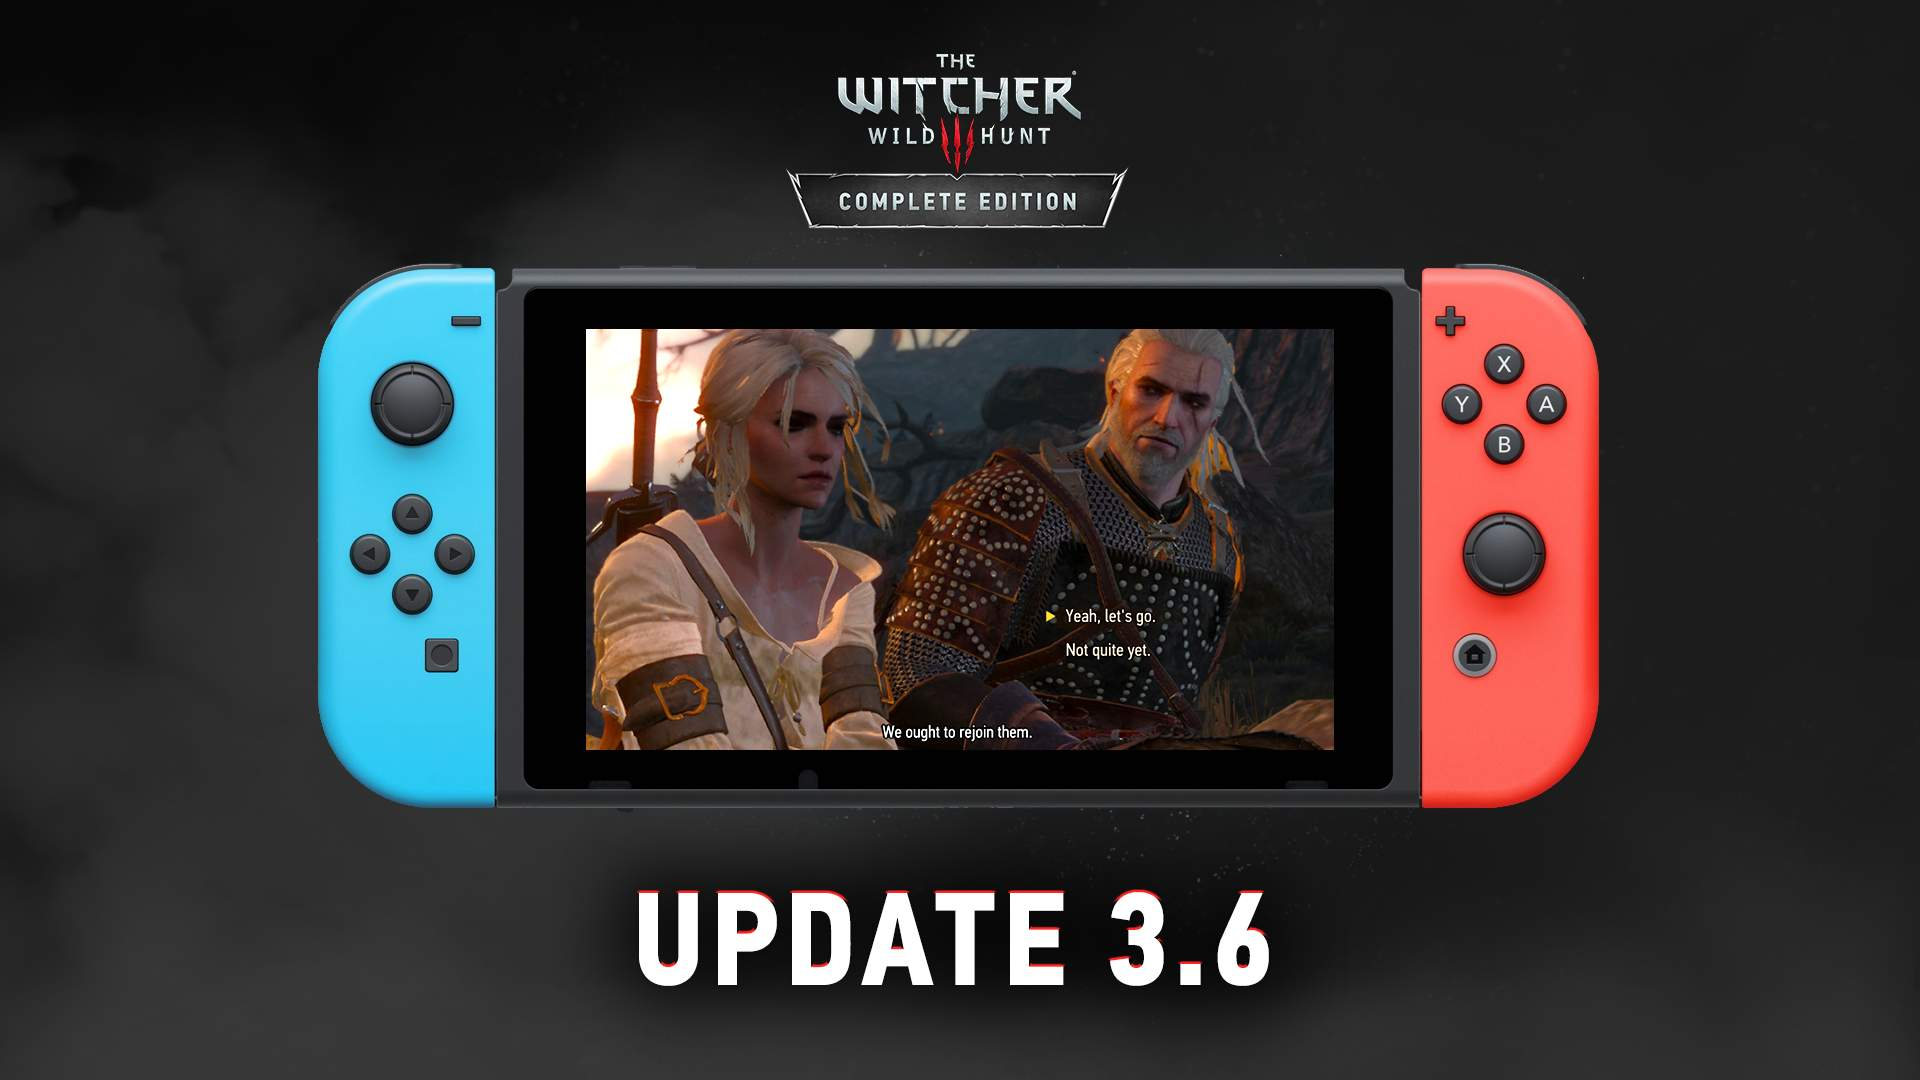 Saber Interactive removes comments hyping up Witcher 3's next patch